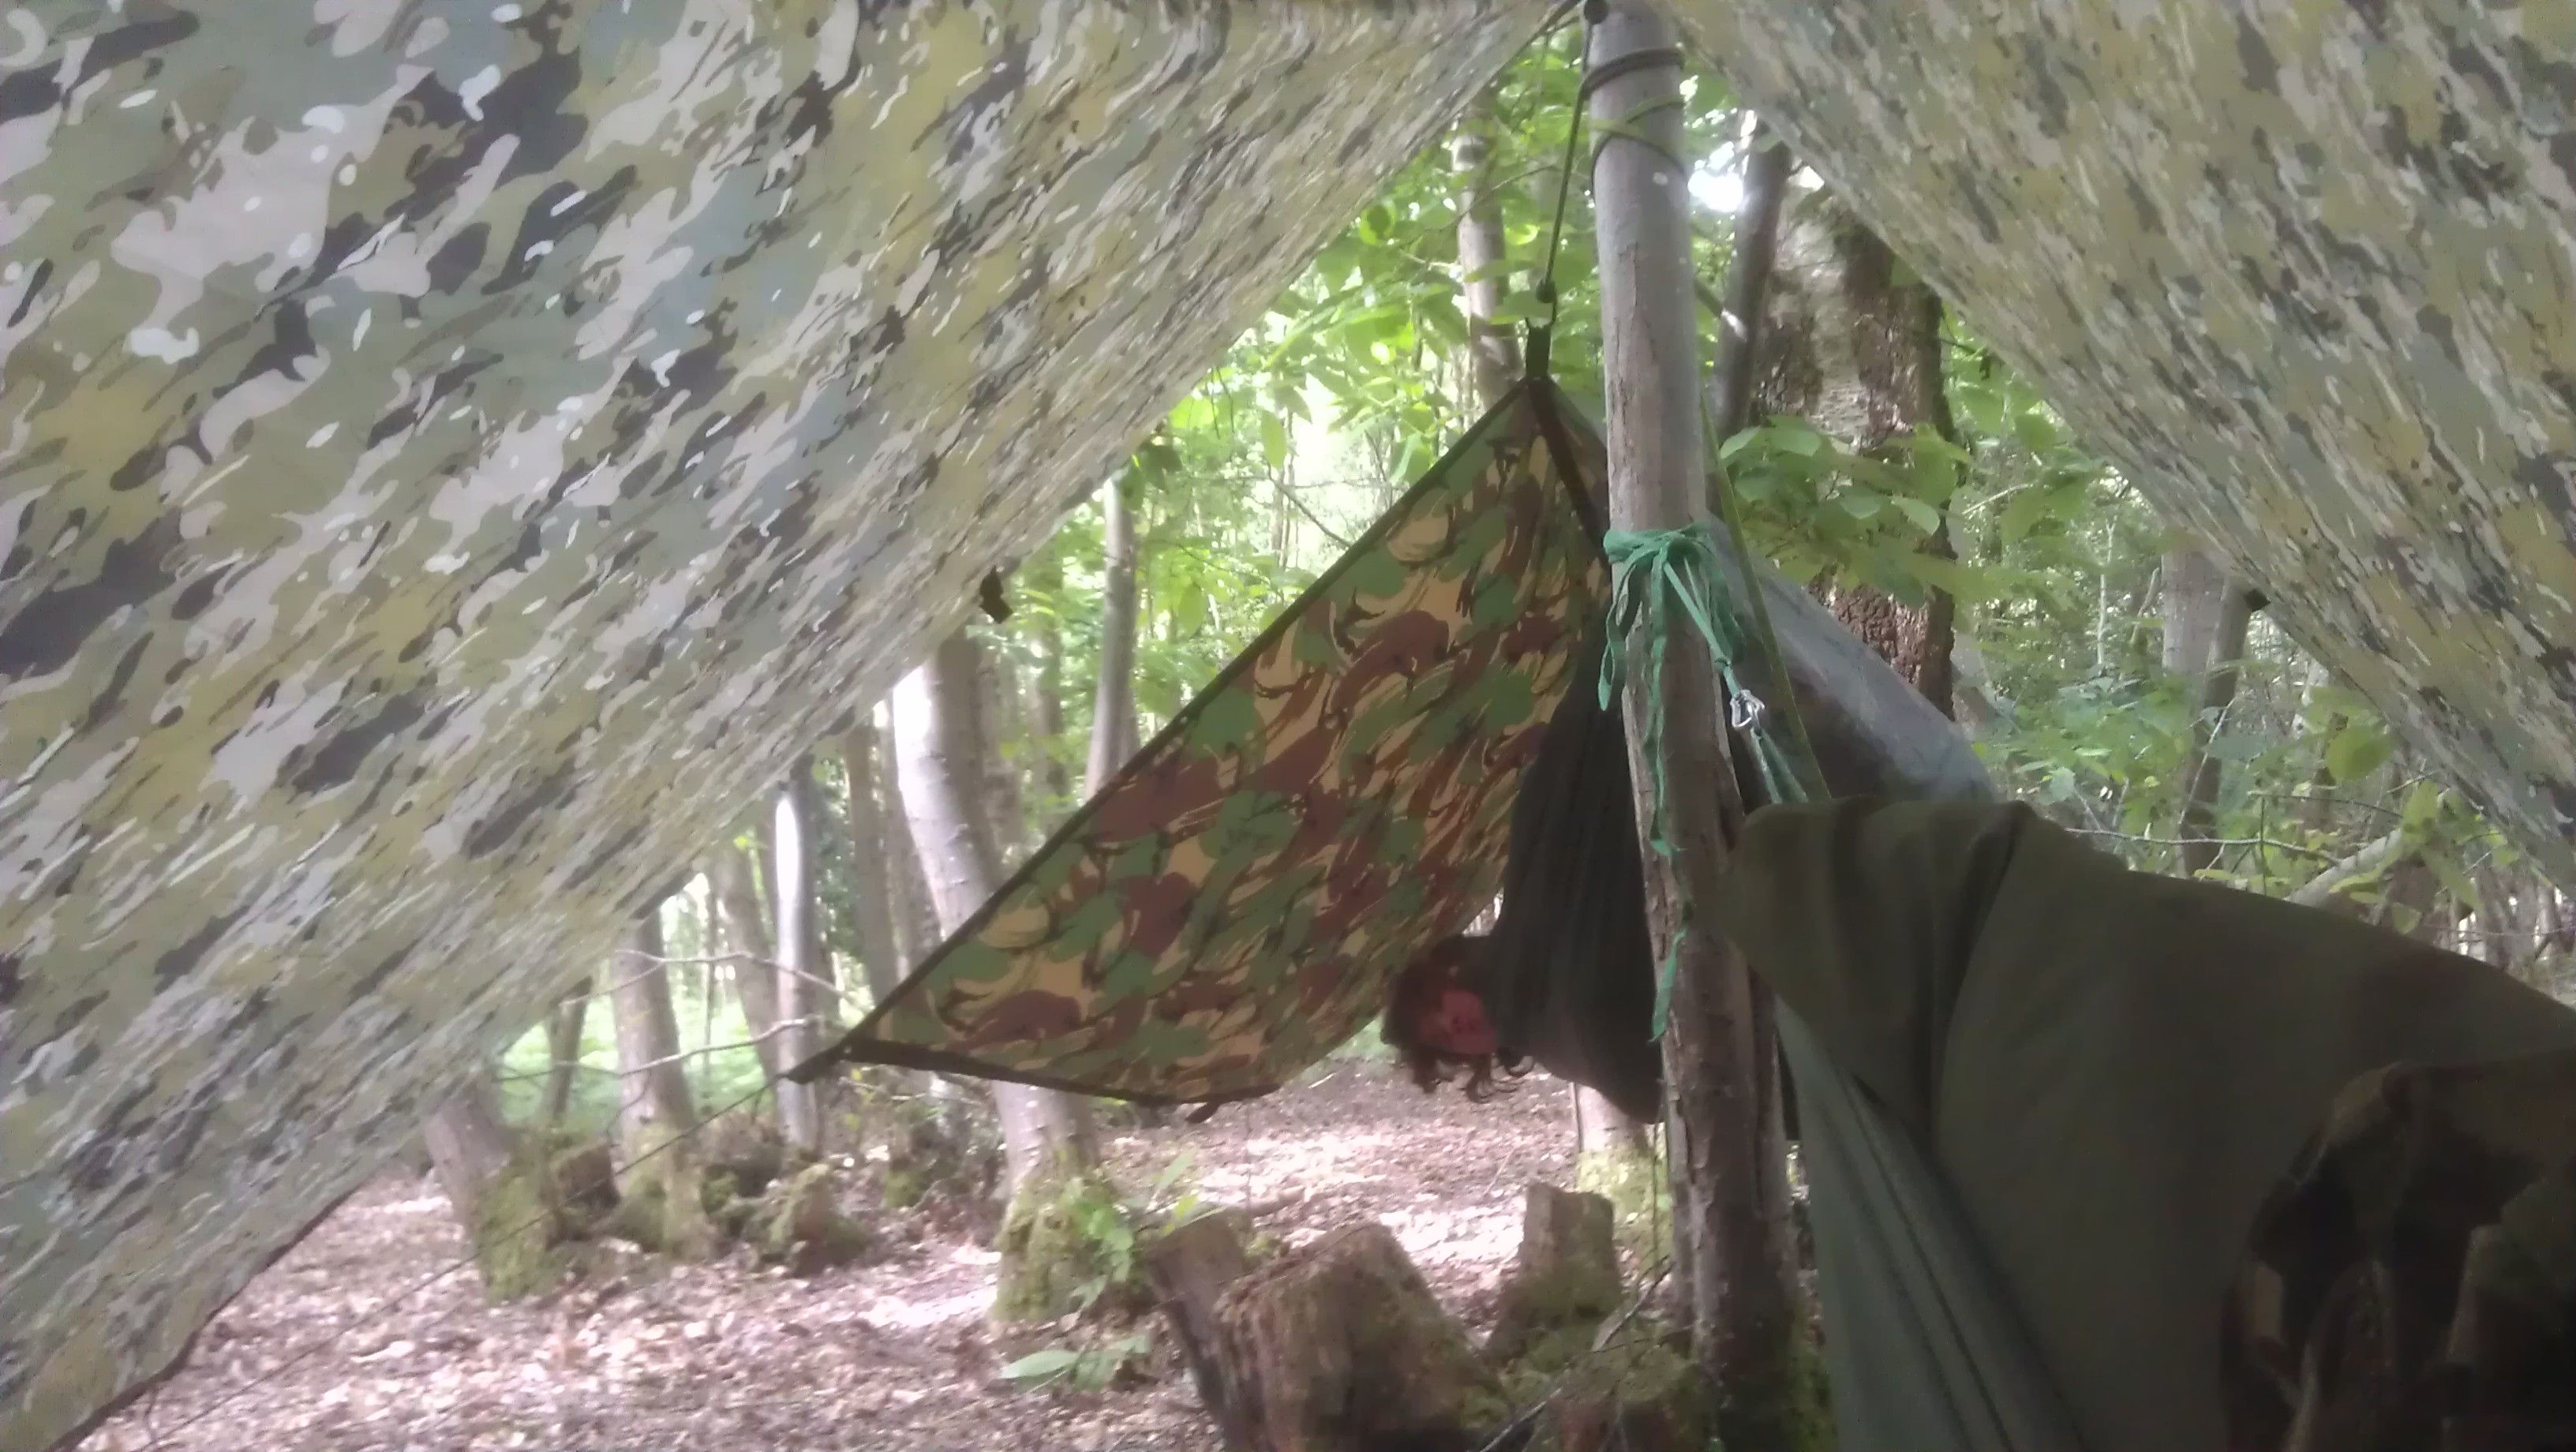 furthest is the british army dpm basha nearest is the dd tarp in multicam  both hammocks are made by dd hammocks  camping set up in  u0027series u0027  furthest is the british army dpm basha      rh   pinterest co uk